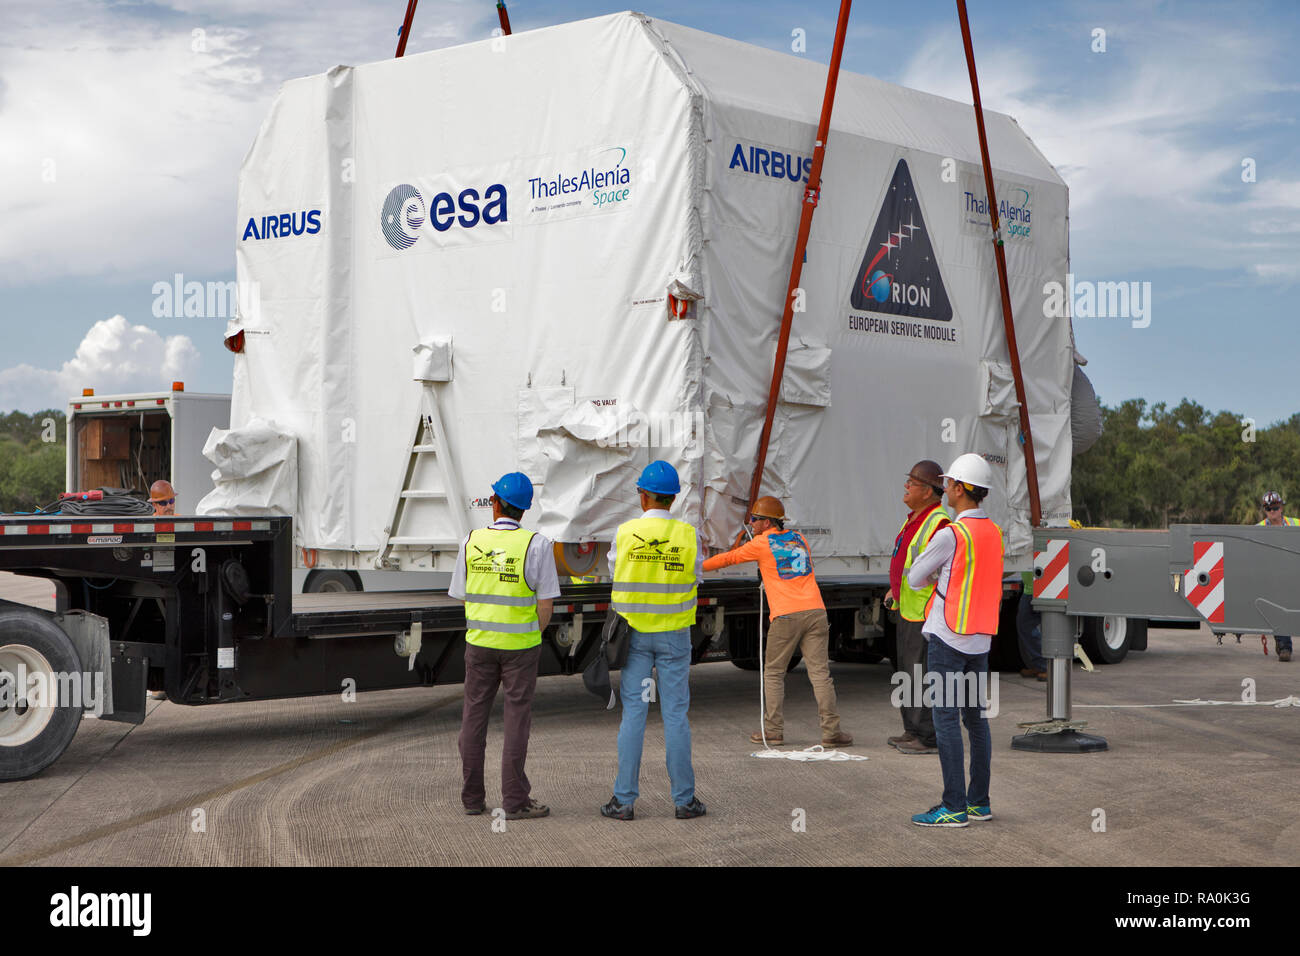 The European Service Module is lifted by crane off the transport at the Kennedy Space Center November 6, 2018 in Cape Canaveral, Florida. The ESM is provided by the European Space Agency, and built by Airbus Defence and Space. It will supply the main propulsion system and power to the Orion spacecraft for Exploration Mission-1, a mission around the Moon. The ESM also will house air and water for astronauts on future missions. EM-1 will be an uncrewed flight test that will provide a foundation for human deep space exploration to destinations beyond Earth orbit. EM-1 will be the first integrated - Stock Image